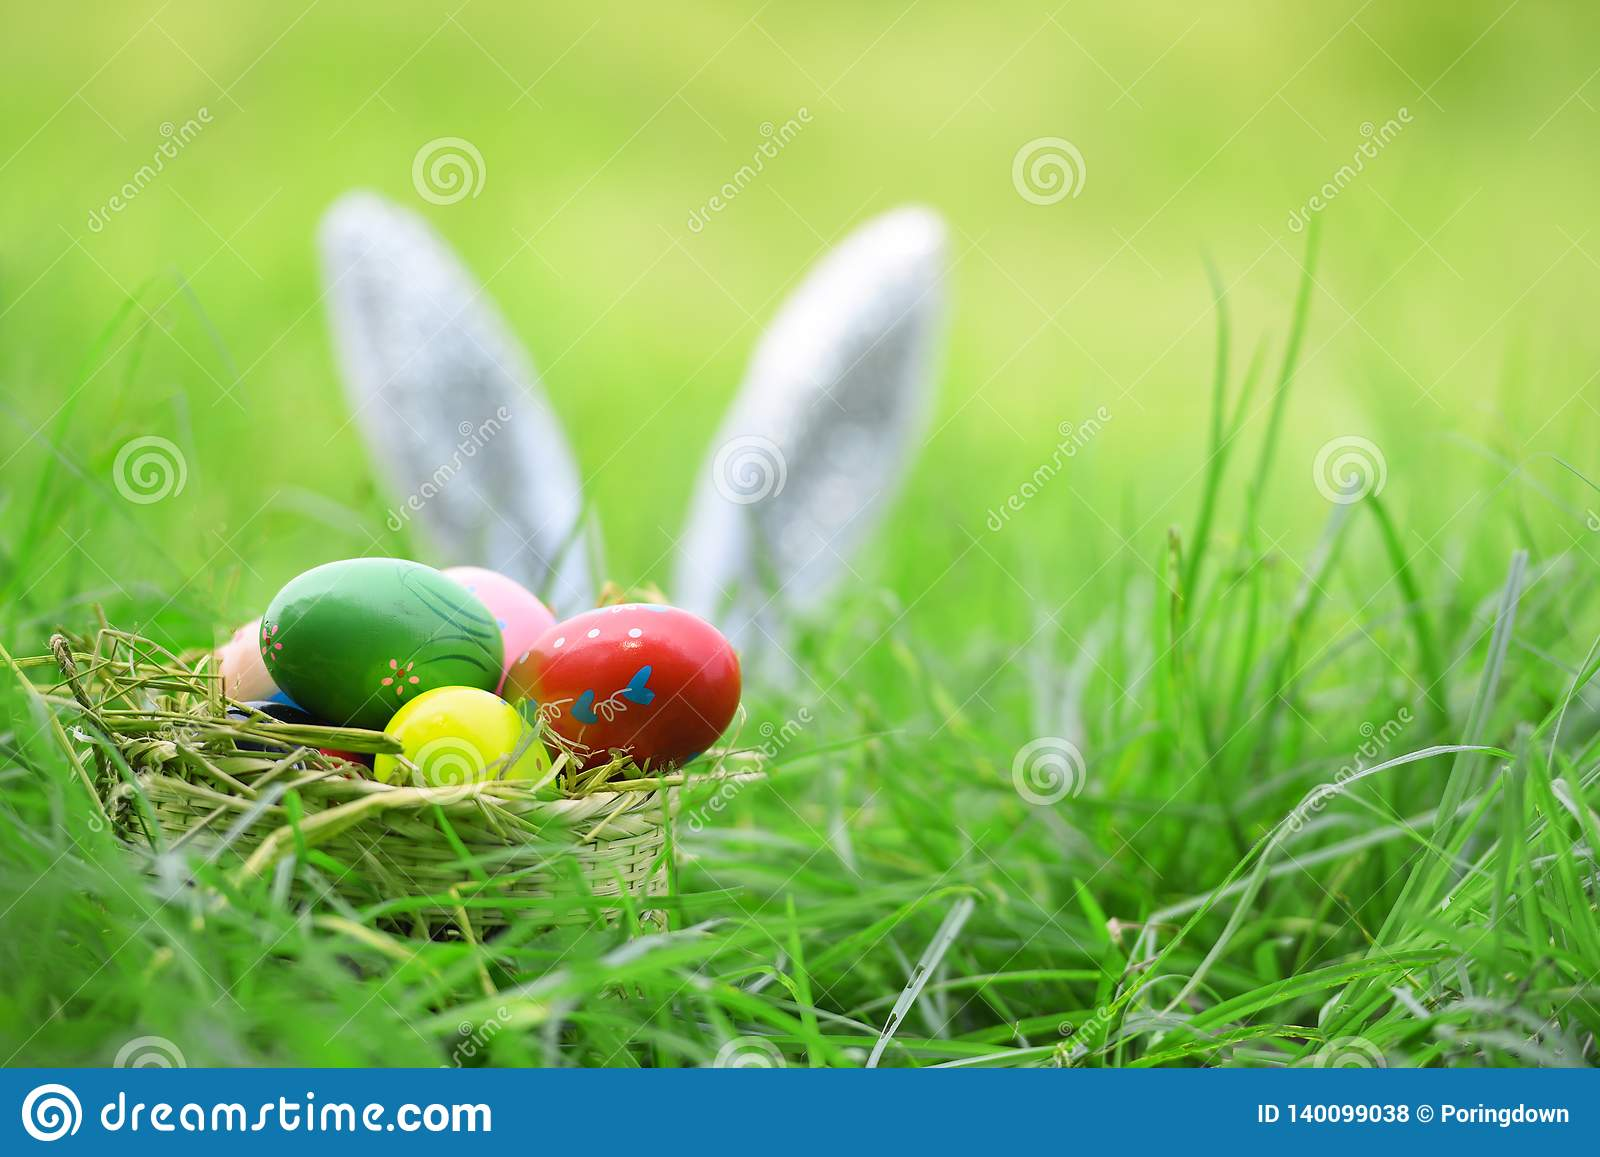 Easter bunny and Easter eggs on green grass outdoor Colorful eggs in the nest basket and ear rabbit on field